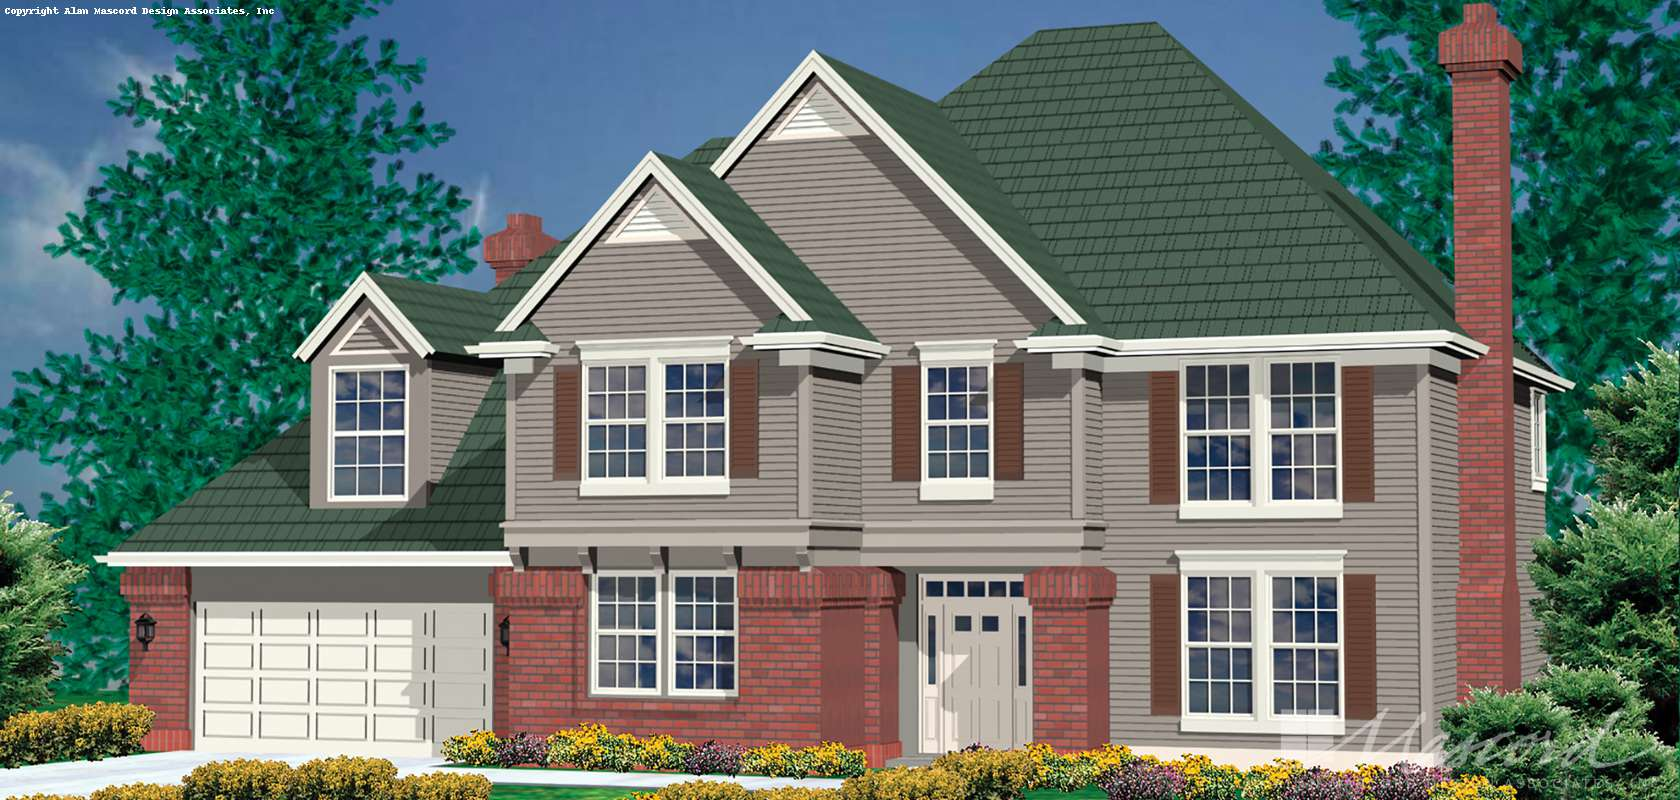 Mascord House Plan 2278: The Bienville